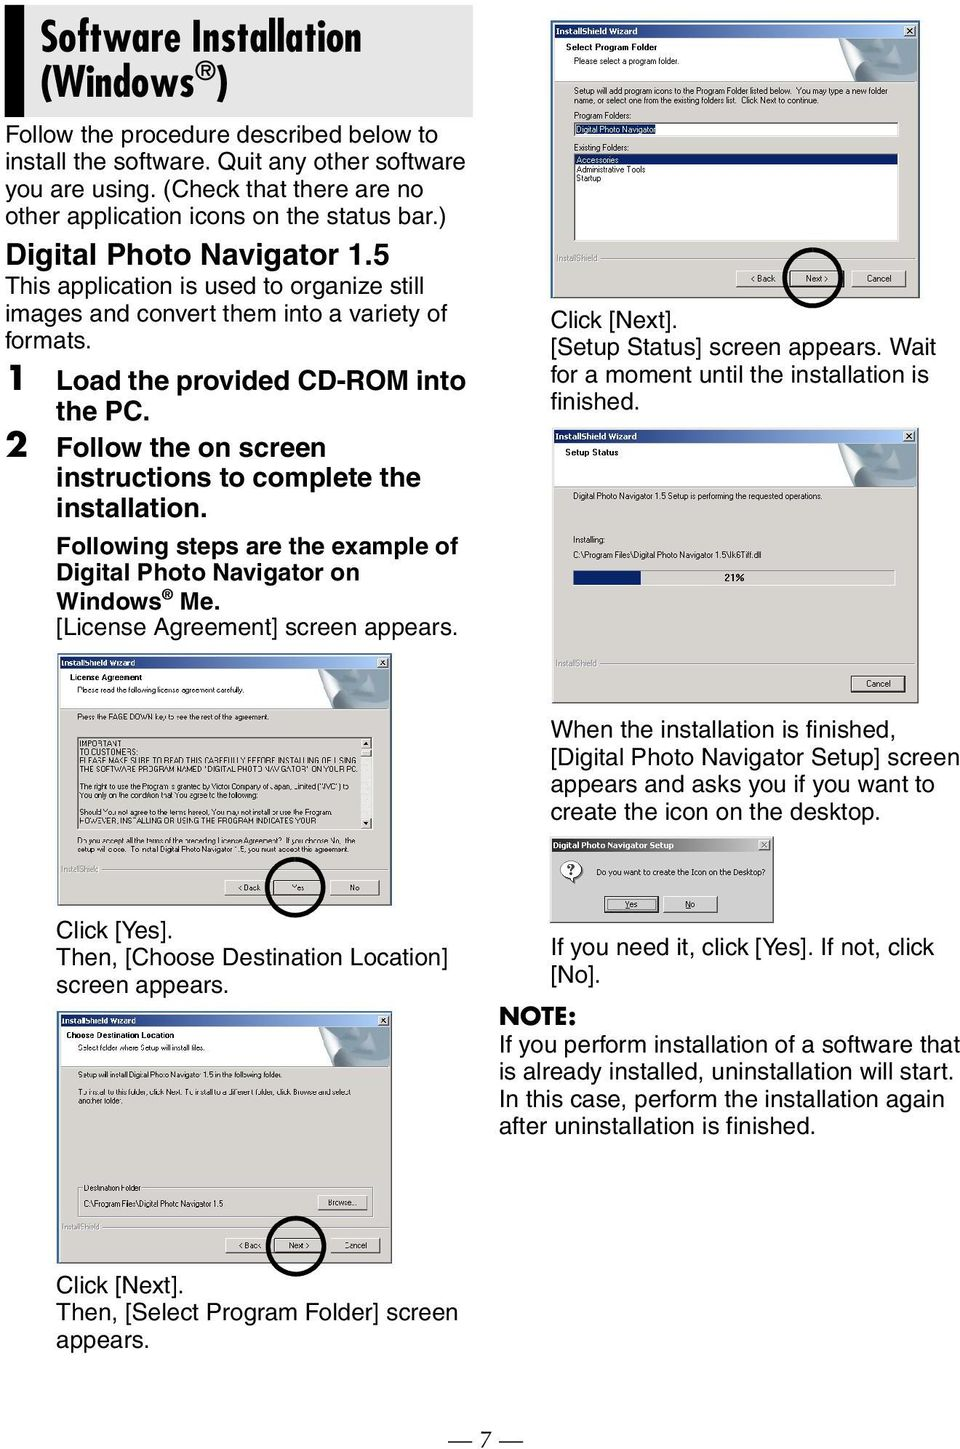 1 Load the provided CD-ROM into the PC. 2 Follow the on screen instructions to complete the installation. Following steps are the example of Digital Photo Navigator on Windows Me.